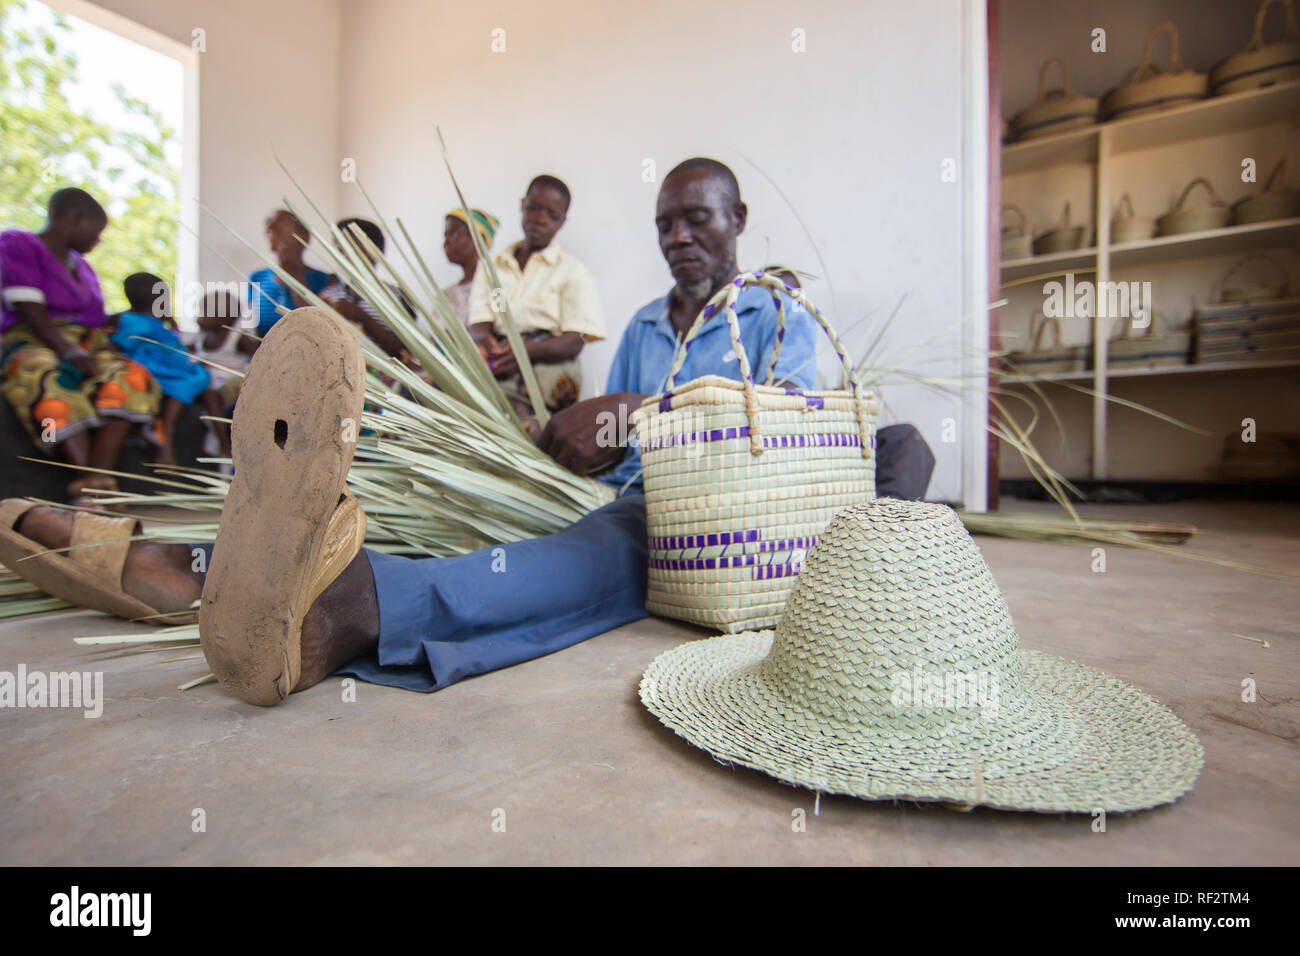 A Malawian man weaves baskets for a community outreach program of Majete Wildlife Reserve, Malawi; Cmmunity members craft souveniers to sell - Stock Image